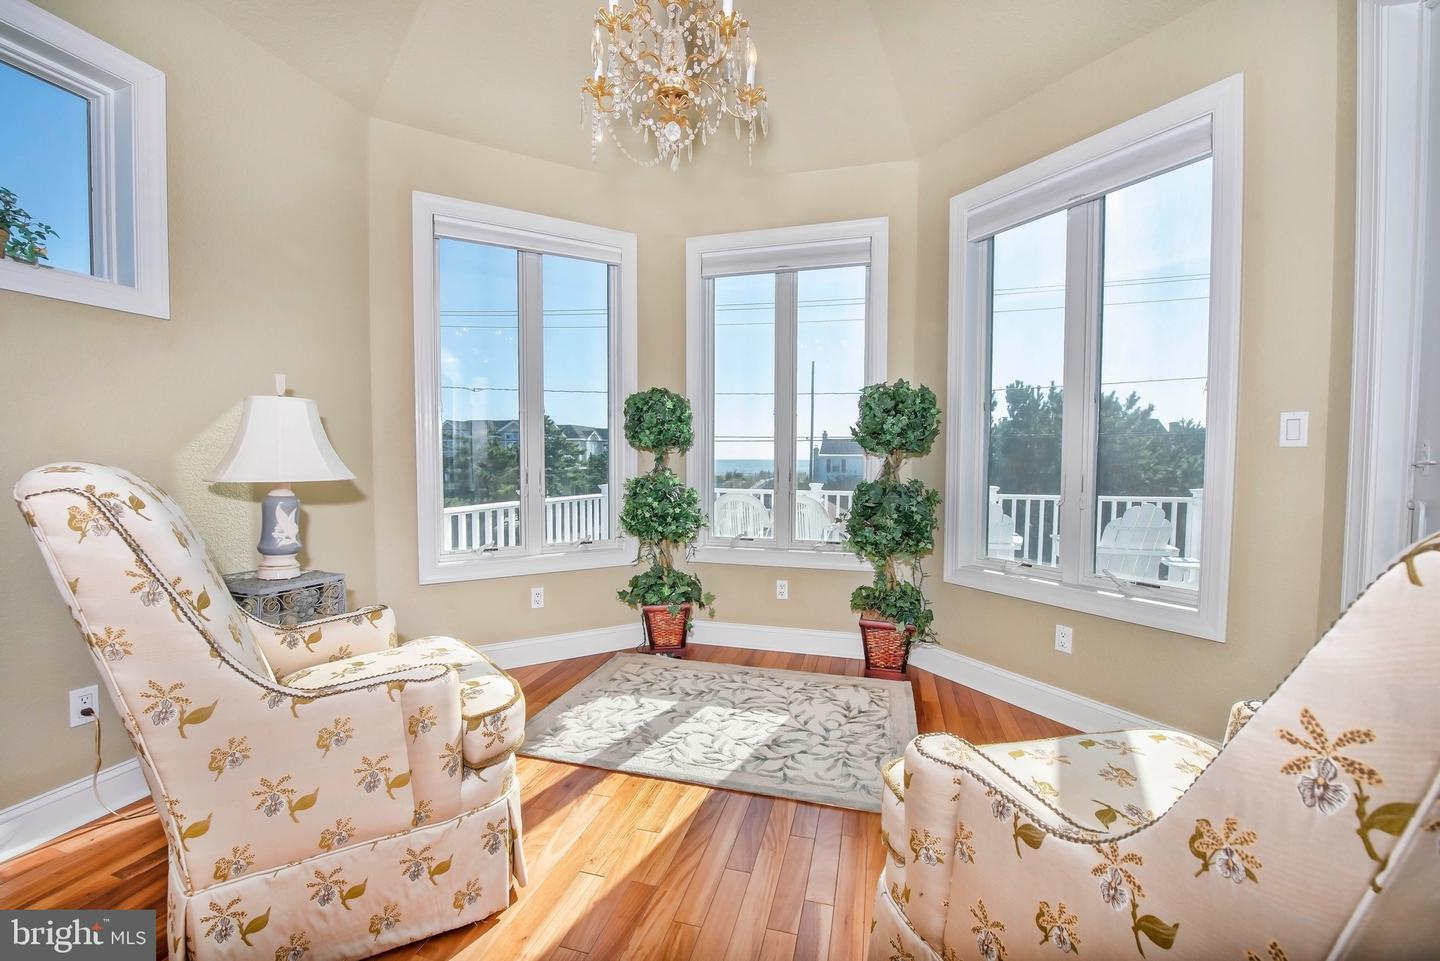 DESU147280-302007870091-2019-08-31-13-42-10 810 Bunting Ave | Fenwick Island, DE Real Estate For Sale | MLS# Desu147280  - Jack Lingo REALTOR